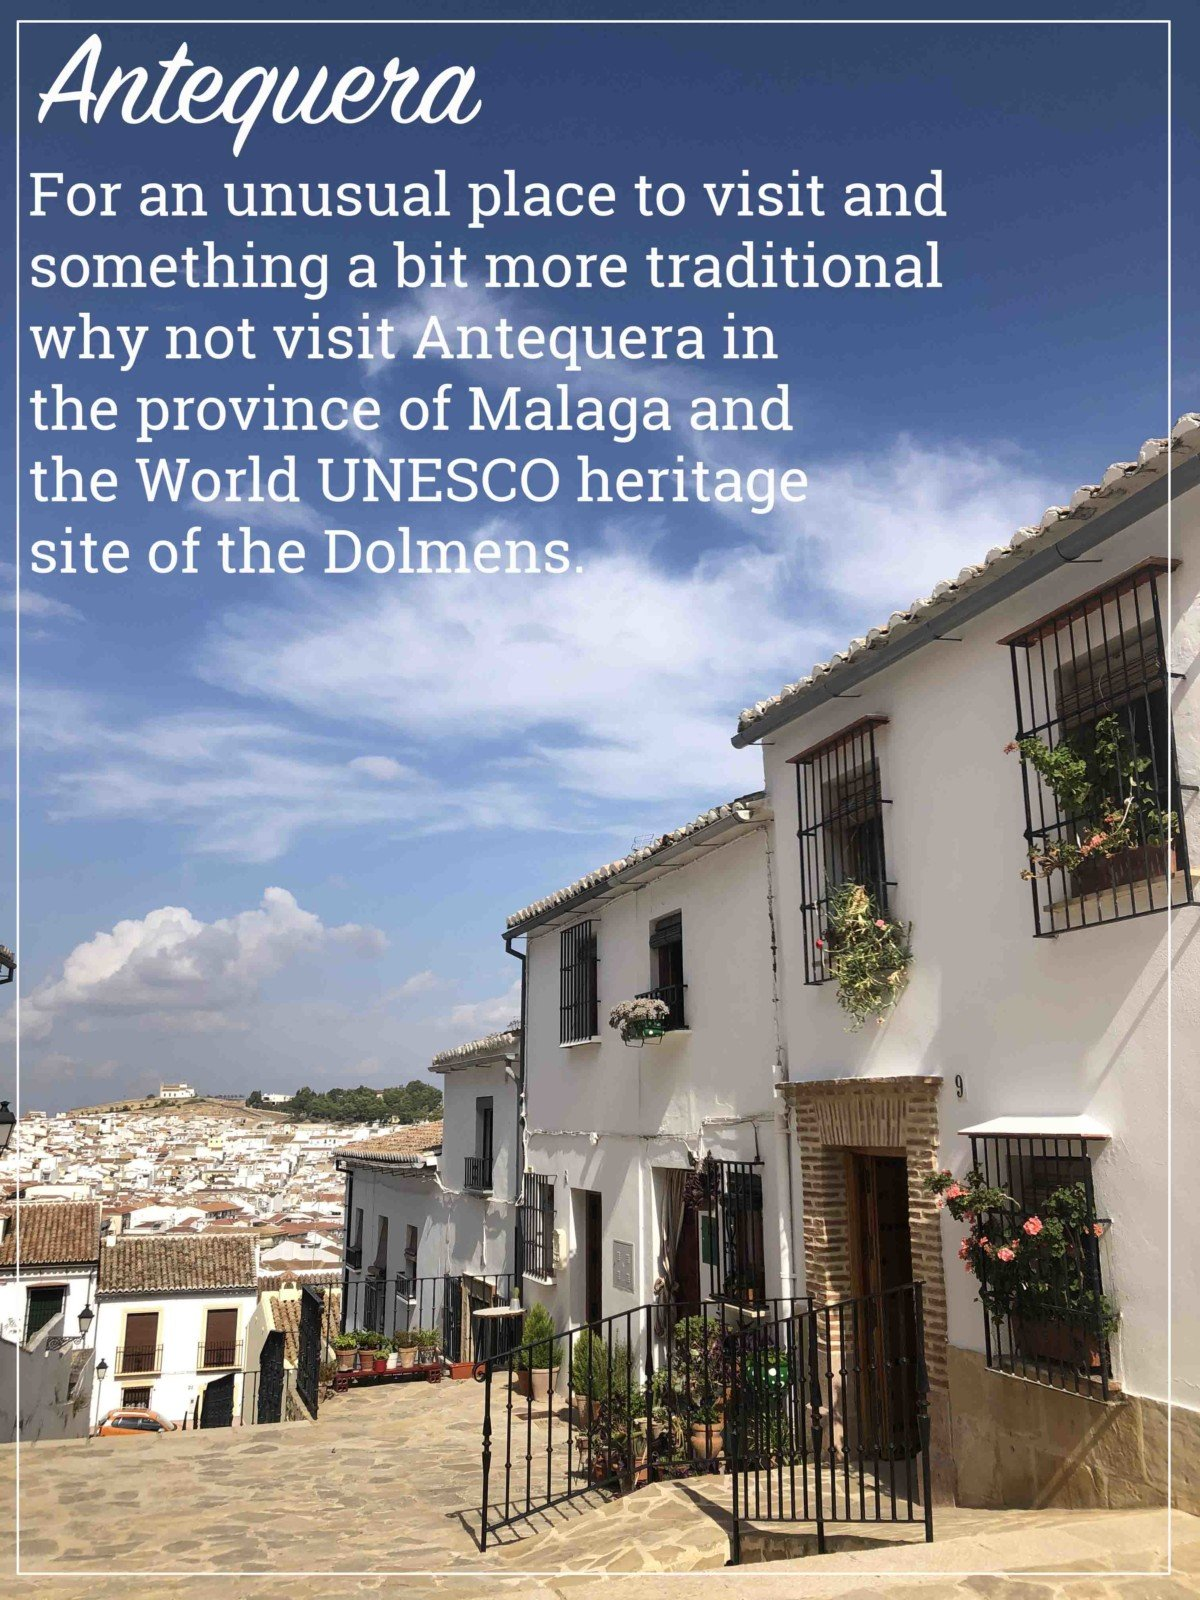 For an unusual place to visit and something a bit more traditional why not visit Antequera in the province of Malaga and the World UNESCO heritage site of the Dolmens.